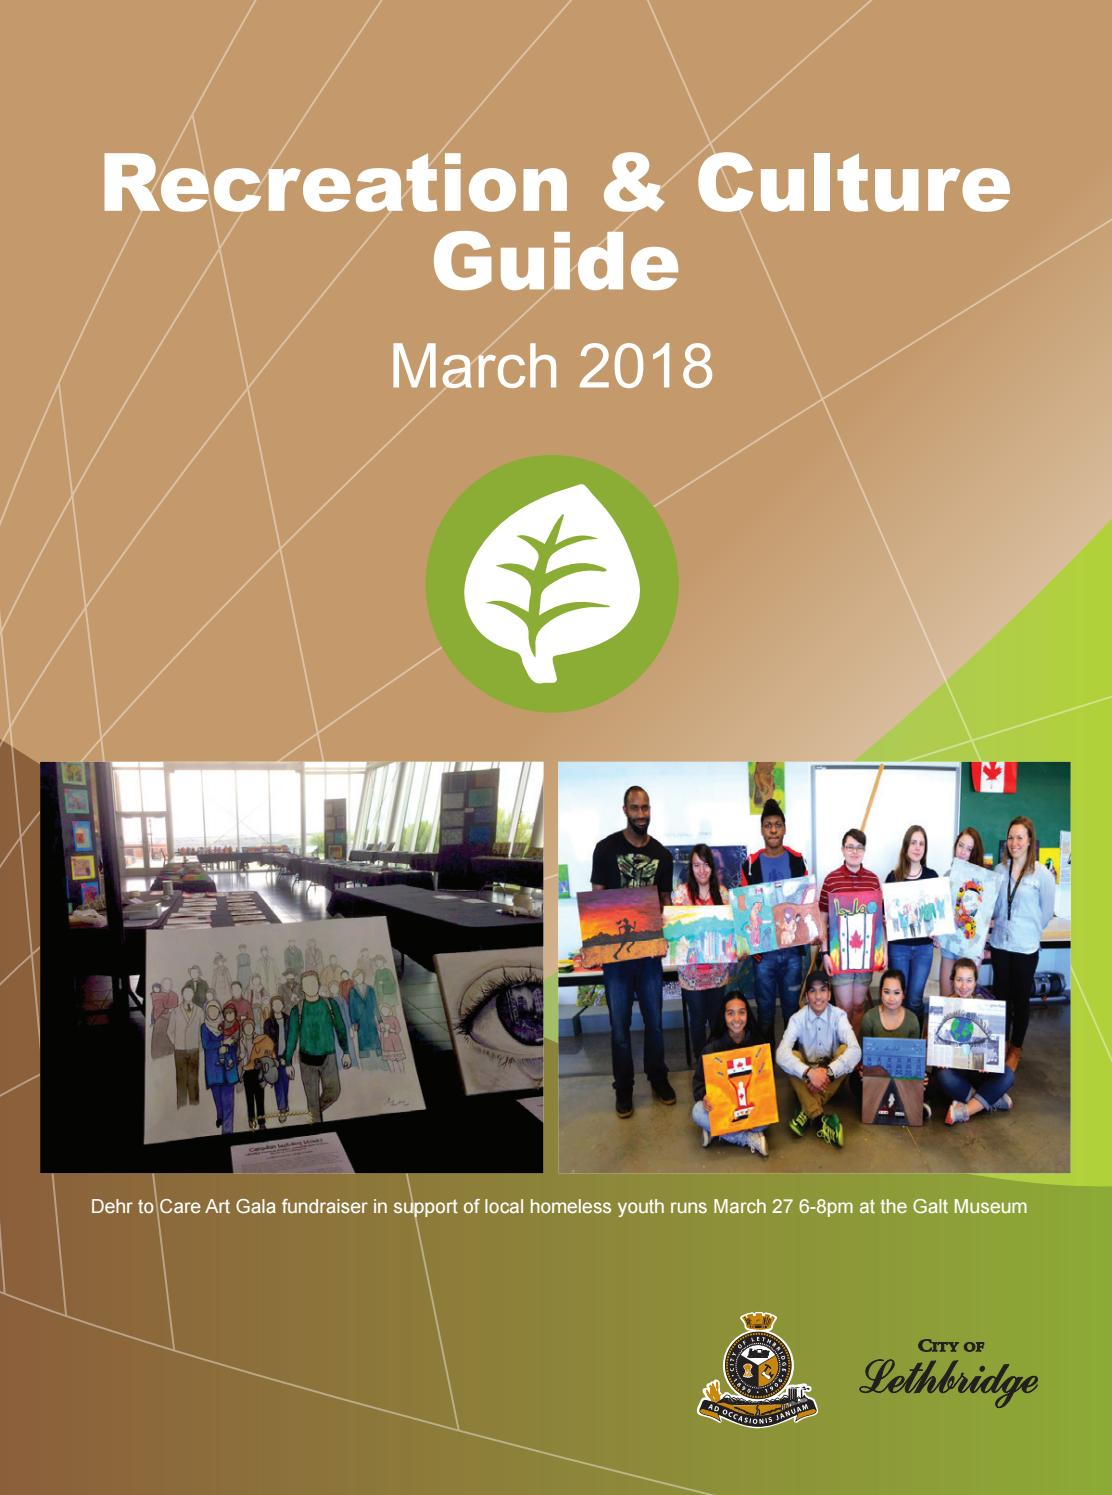 March 2018 Recreation & Culture Guide by CoLethbridge - issuu